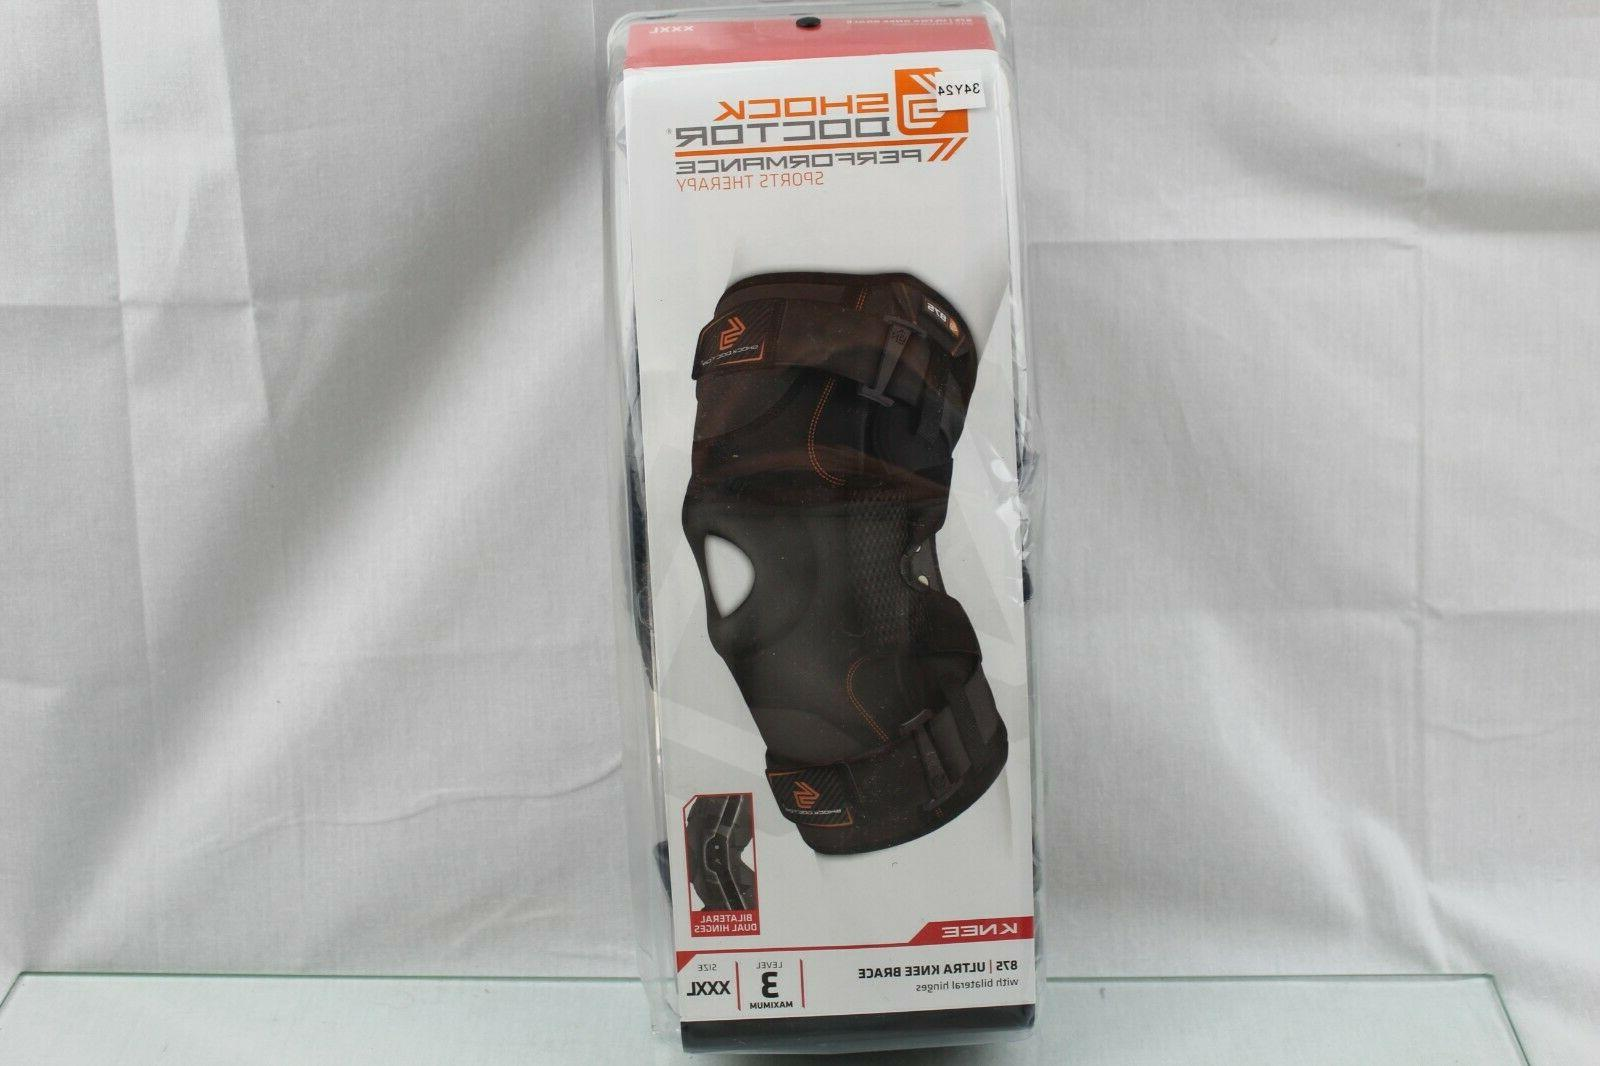 875 ultra knee brace with bilateral hinges